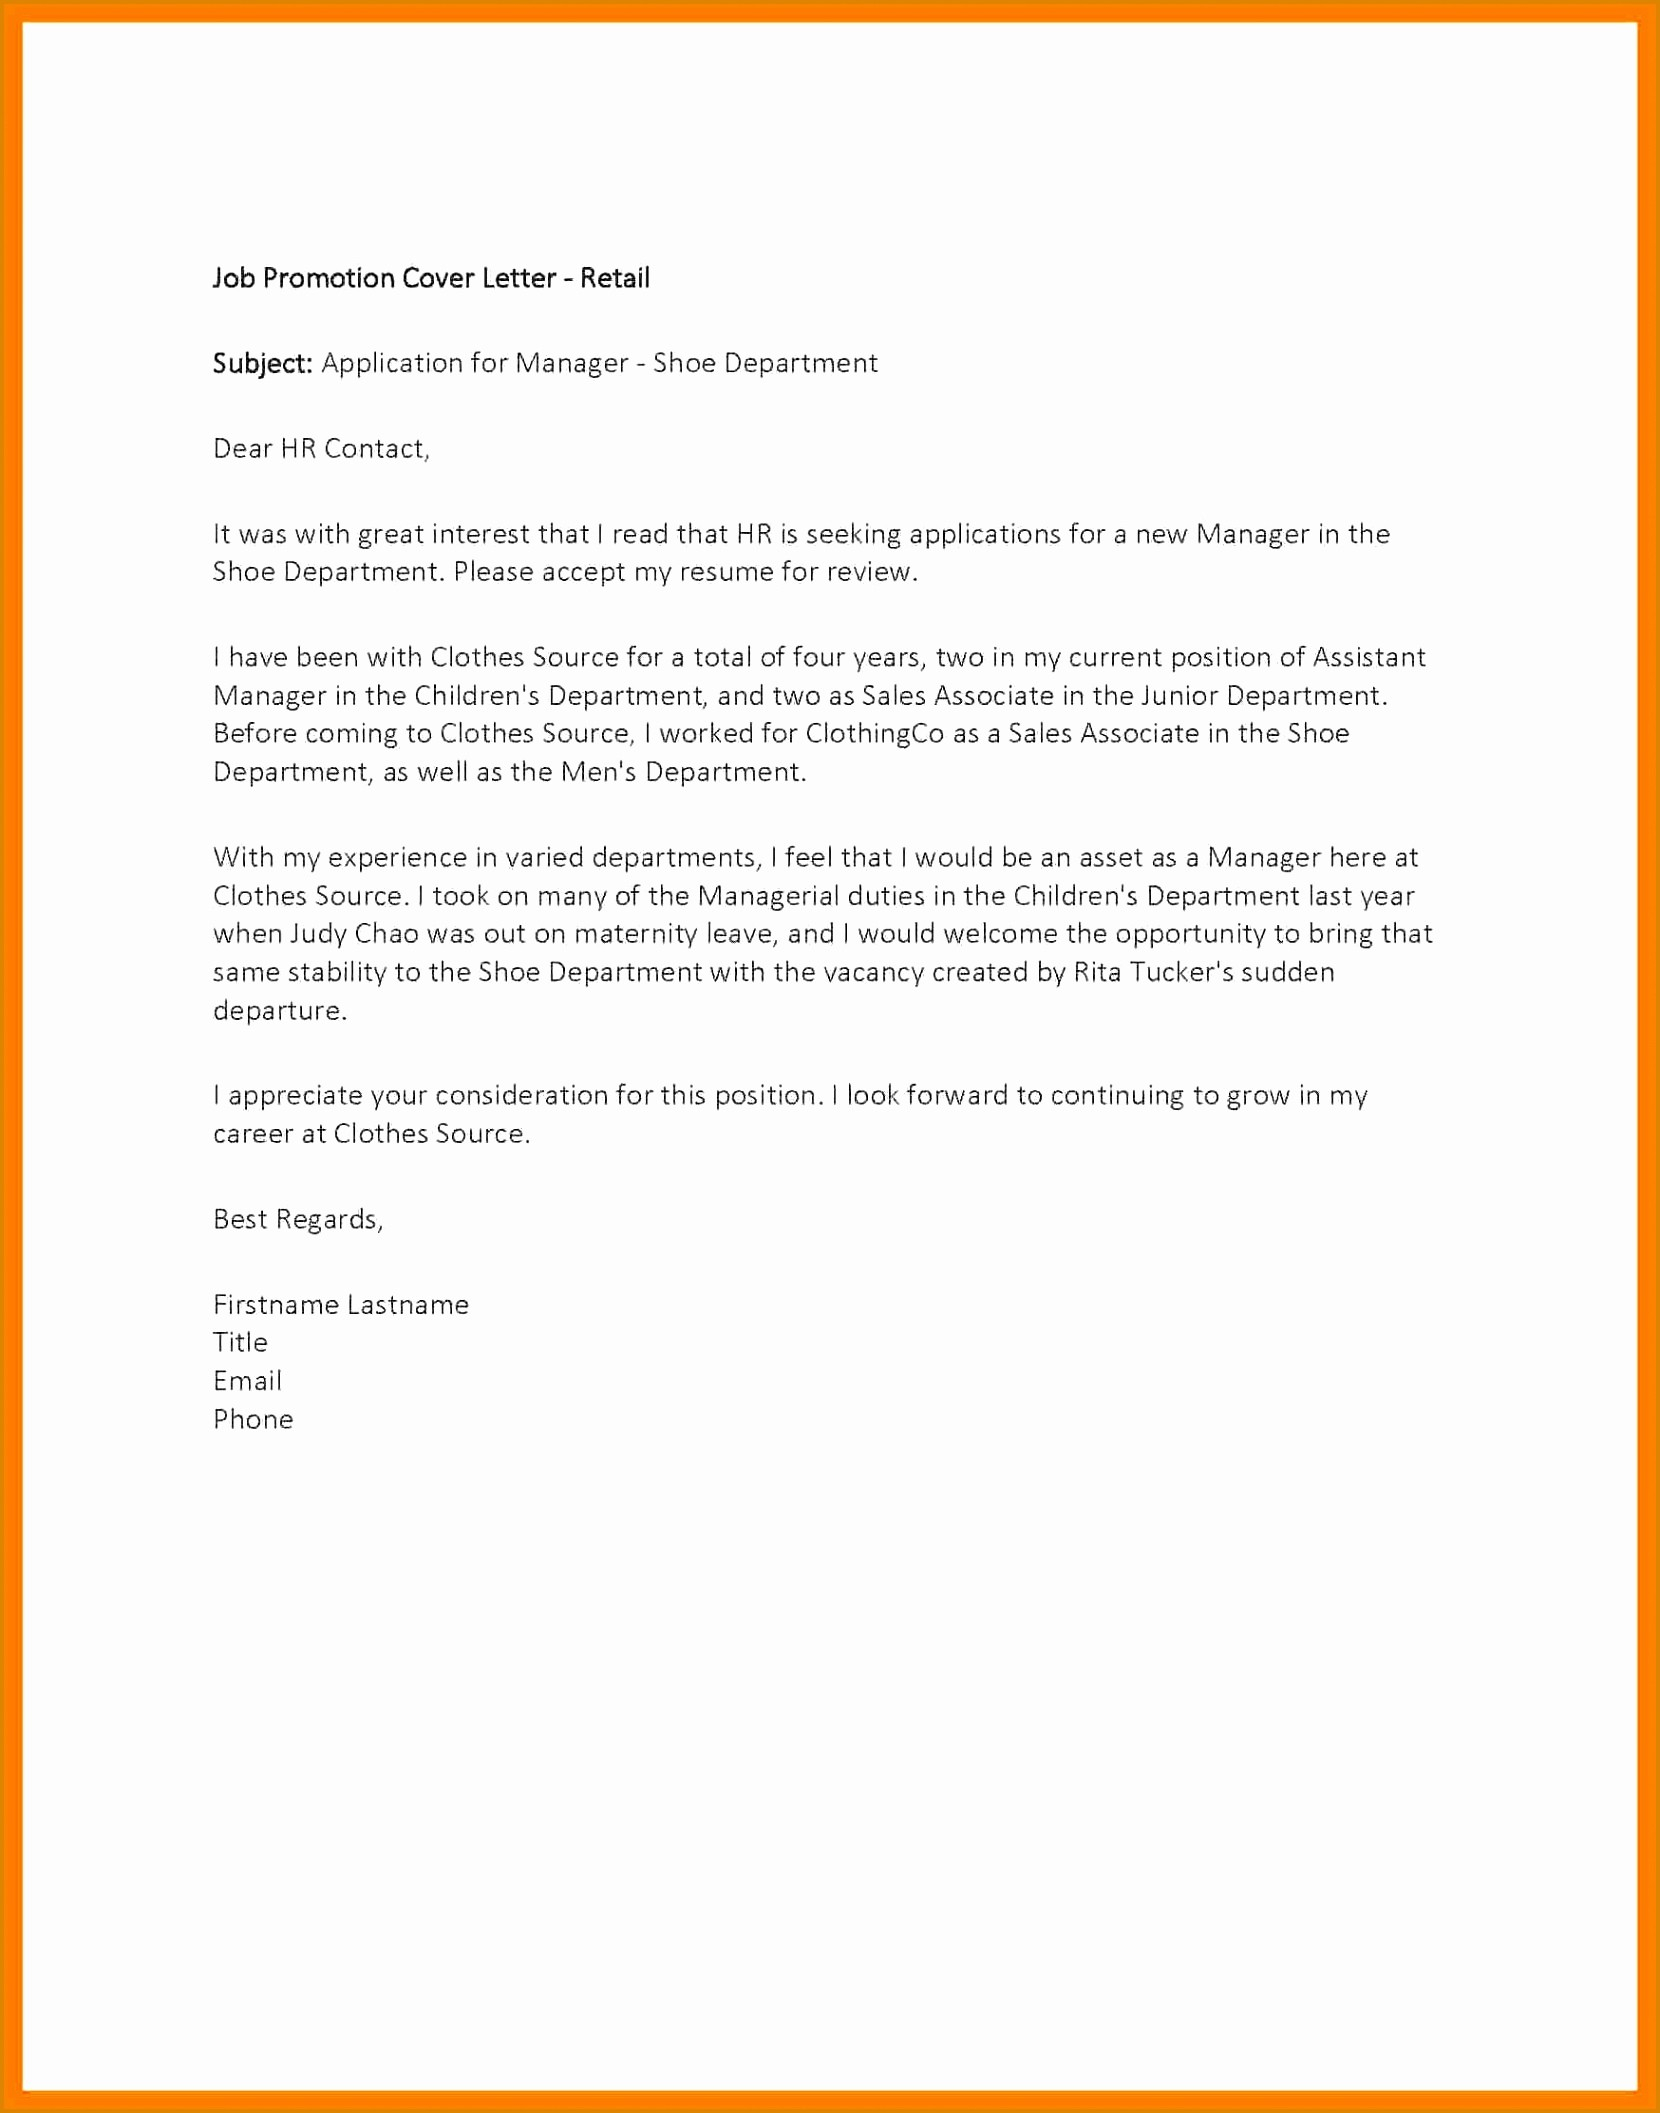 Cover Letter Template Retail Sales assistant - Brilliant Ideas Of Best Retail Cover Letter Examples for Example